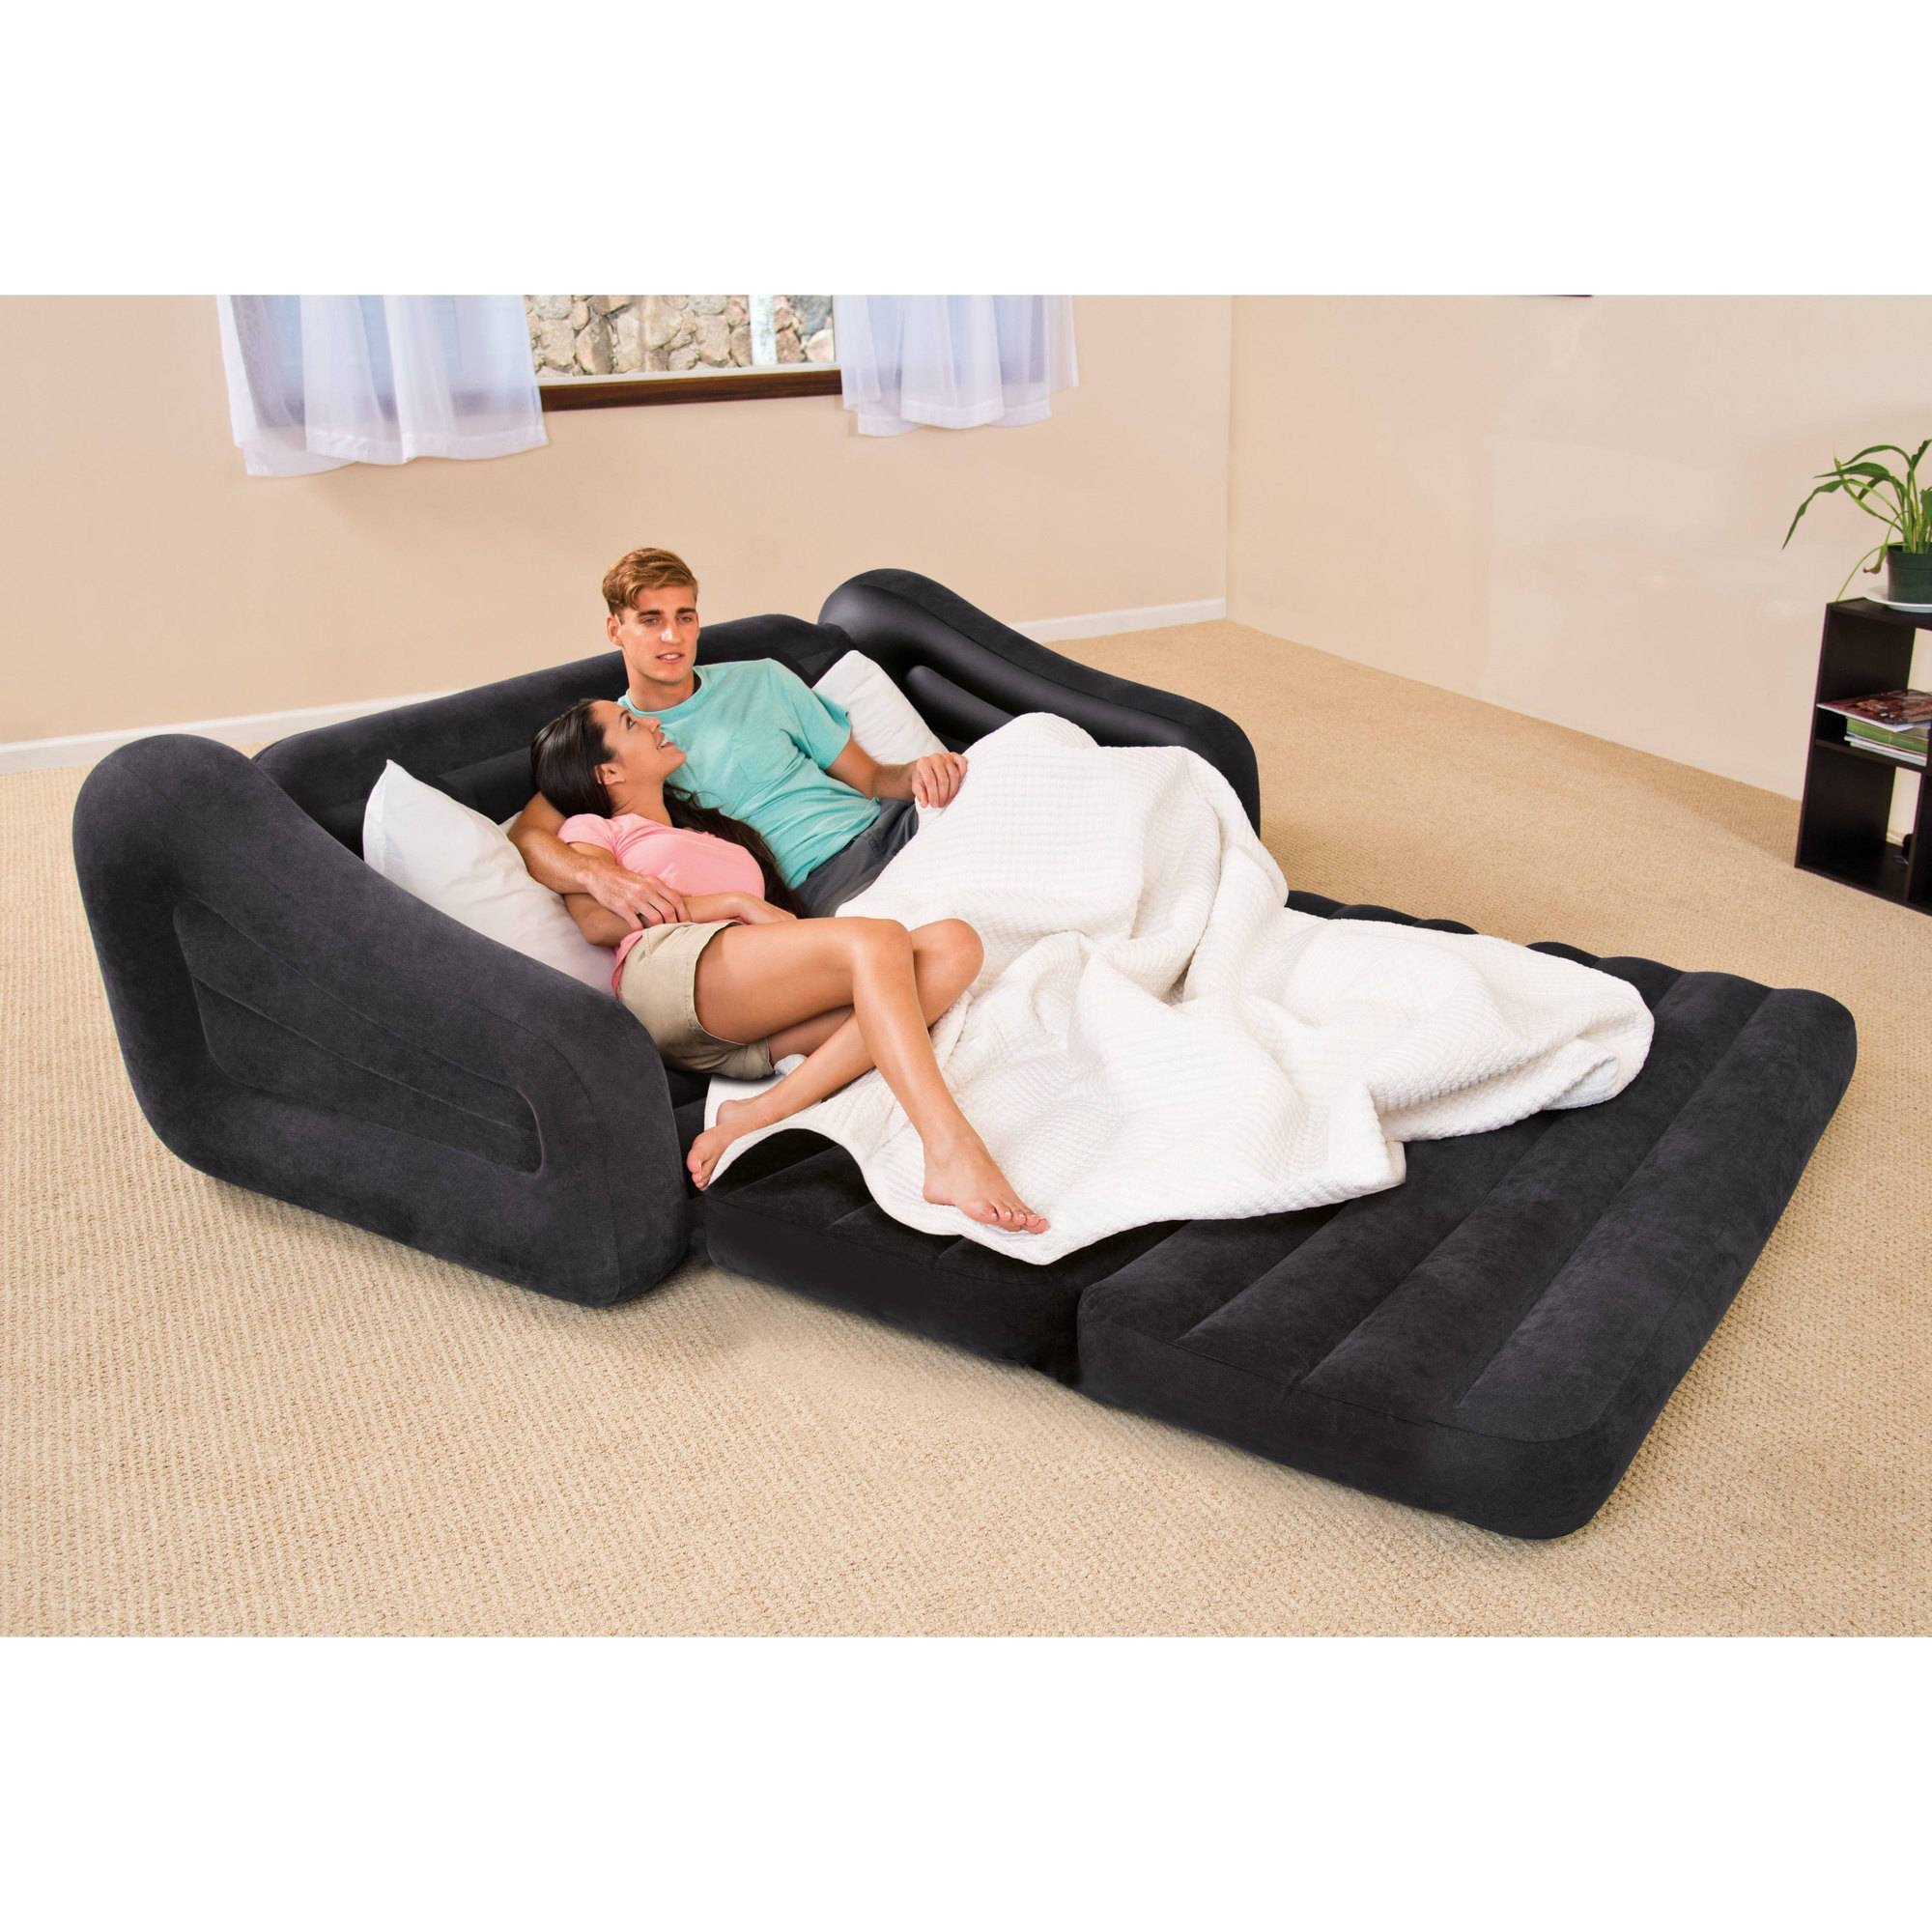 Intex Queen Inflatable Pull Out Sofa Bed – Walmart In Sofa Sleepers Queen Size (View 7 of 30)